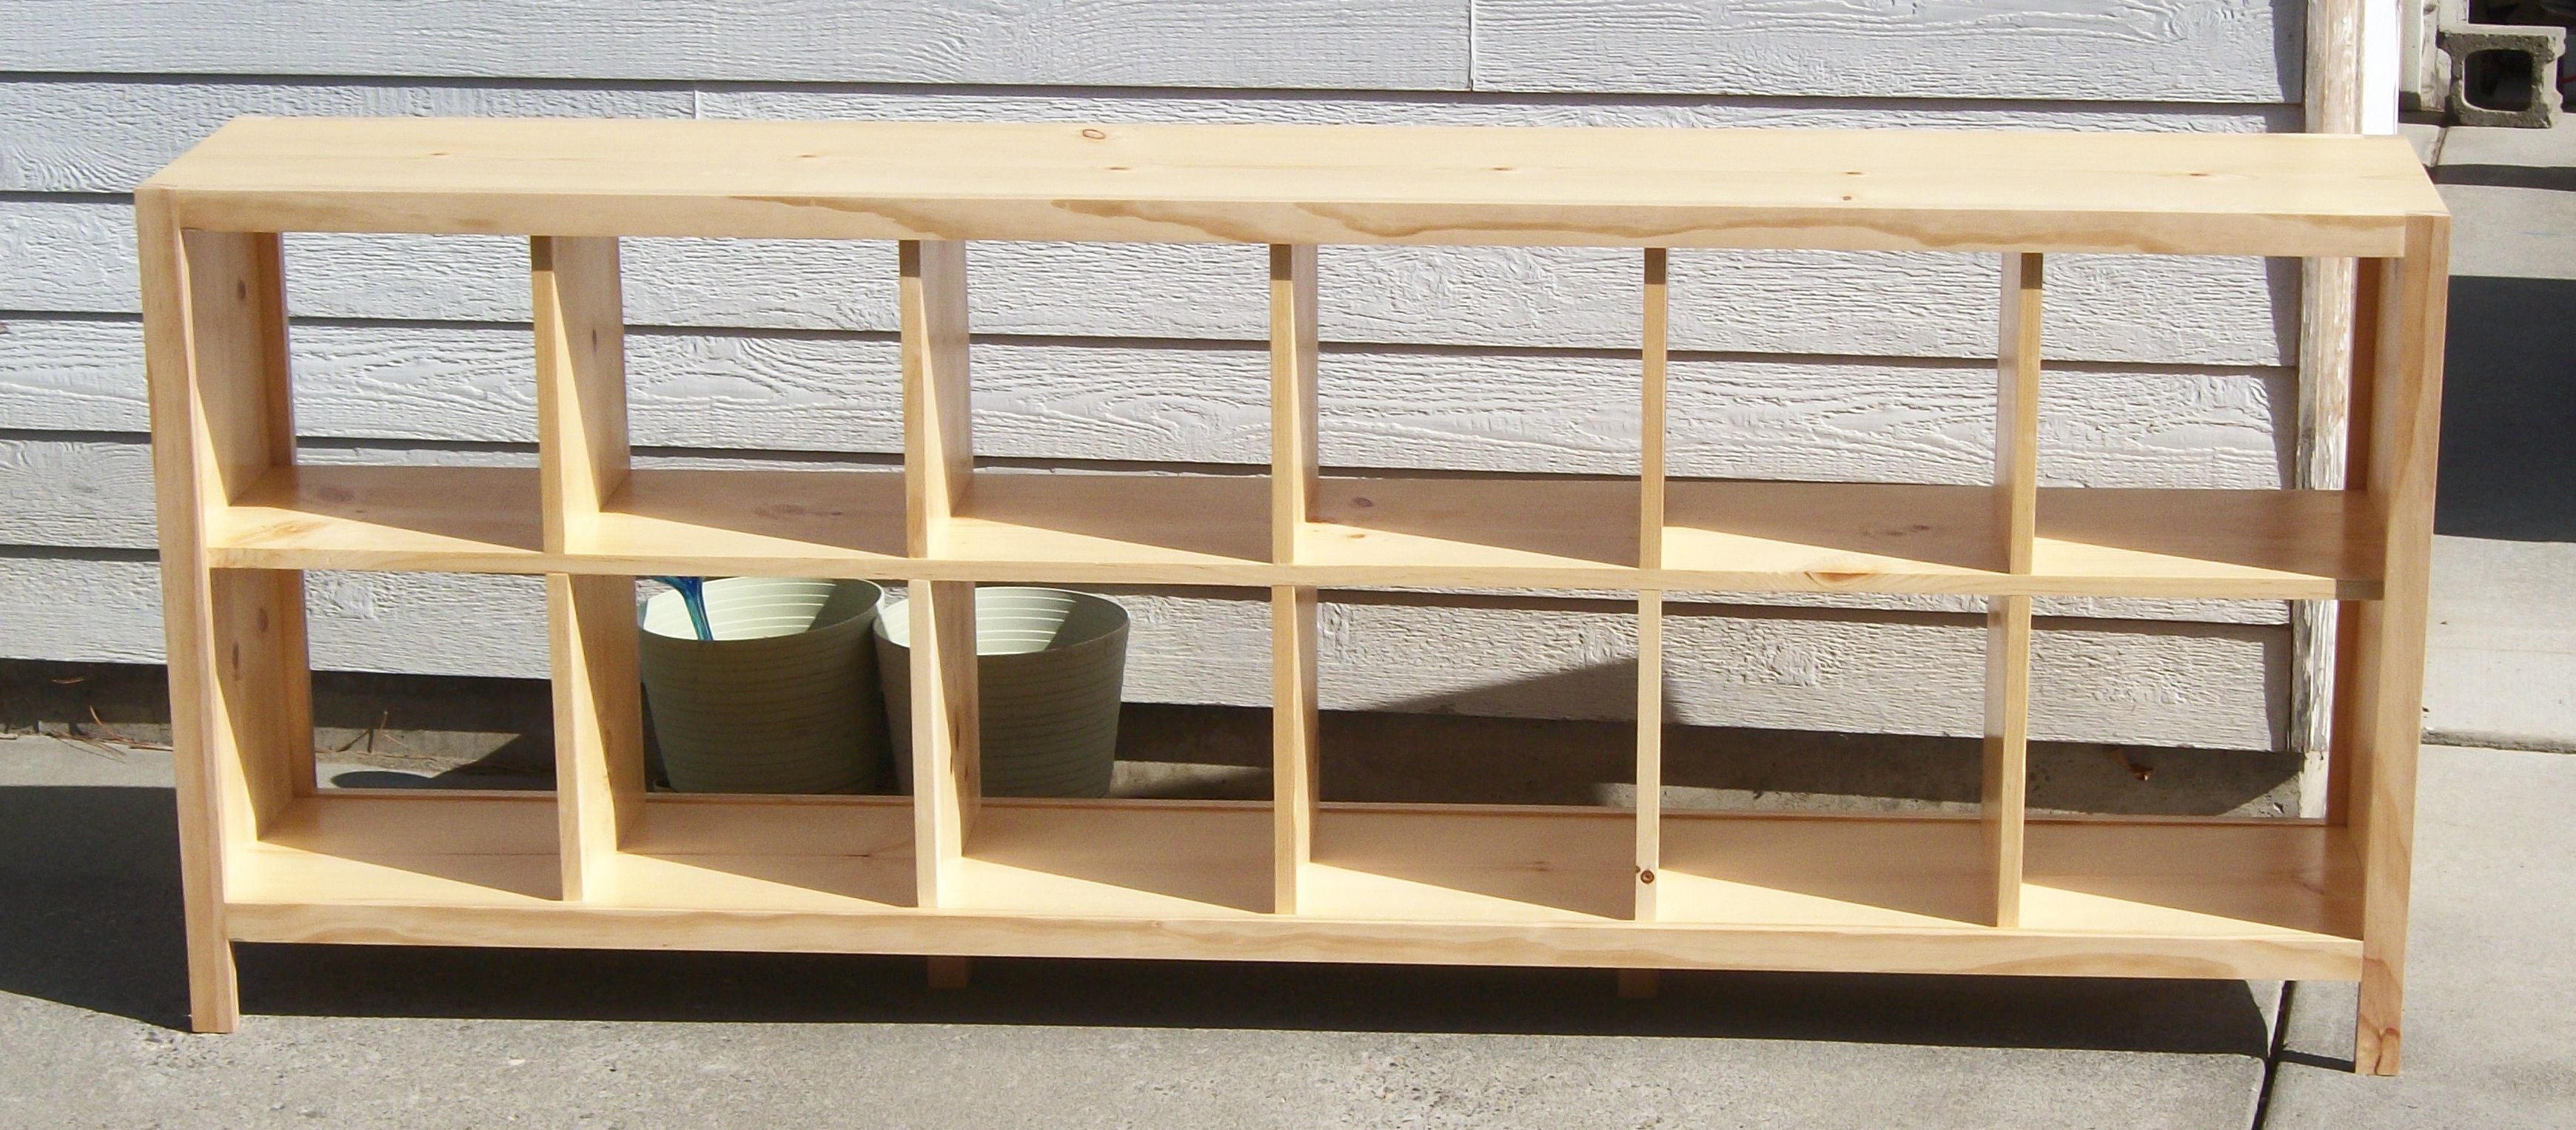 Easy Cube Bookcase Plans Built This For A Friend Of Mine Also